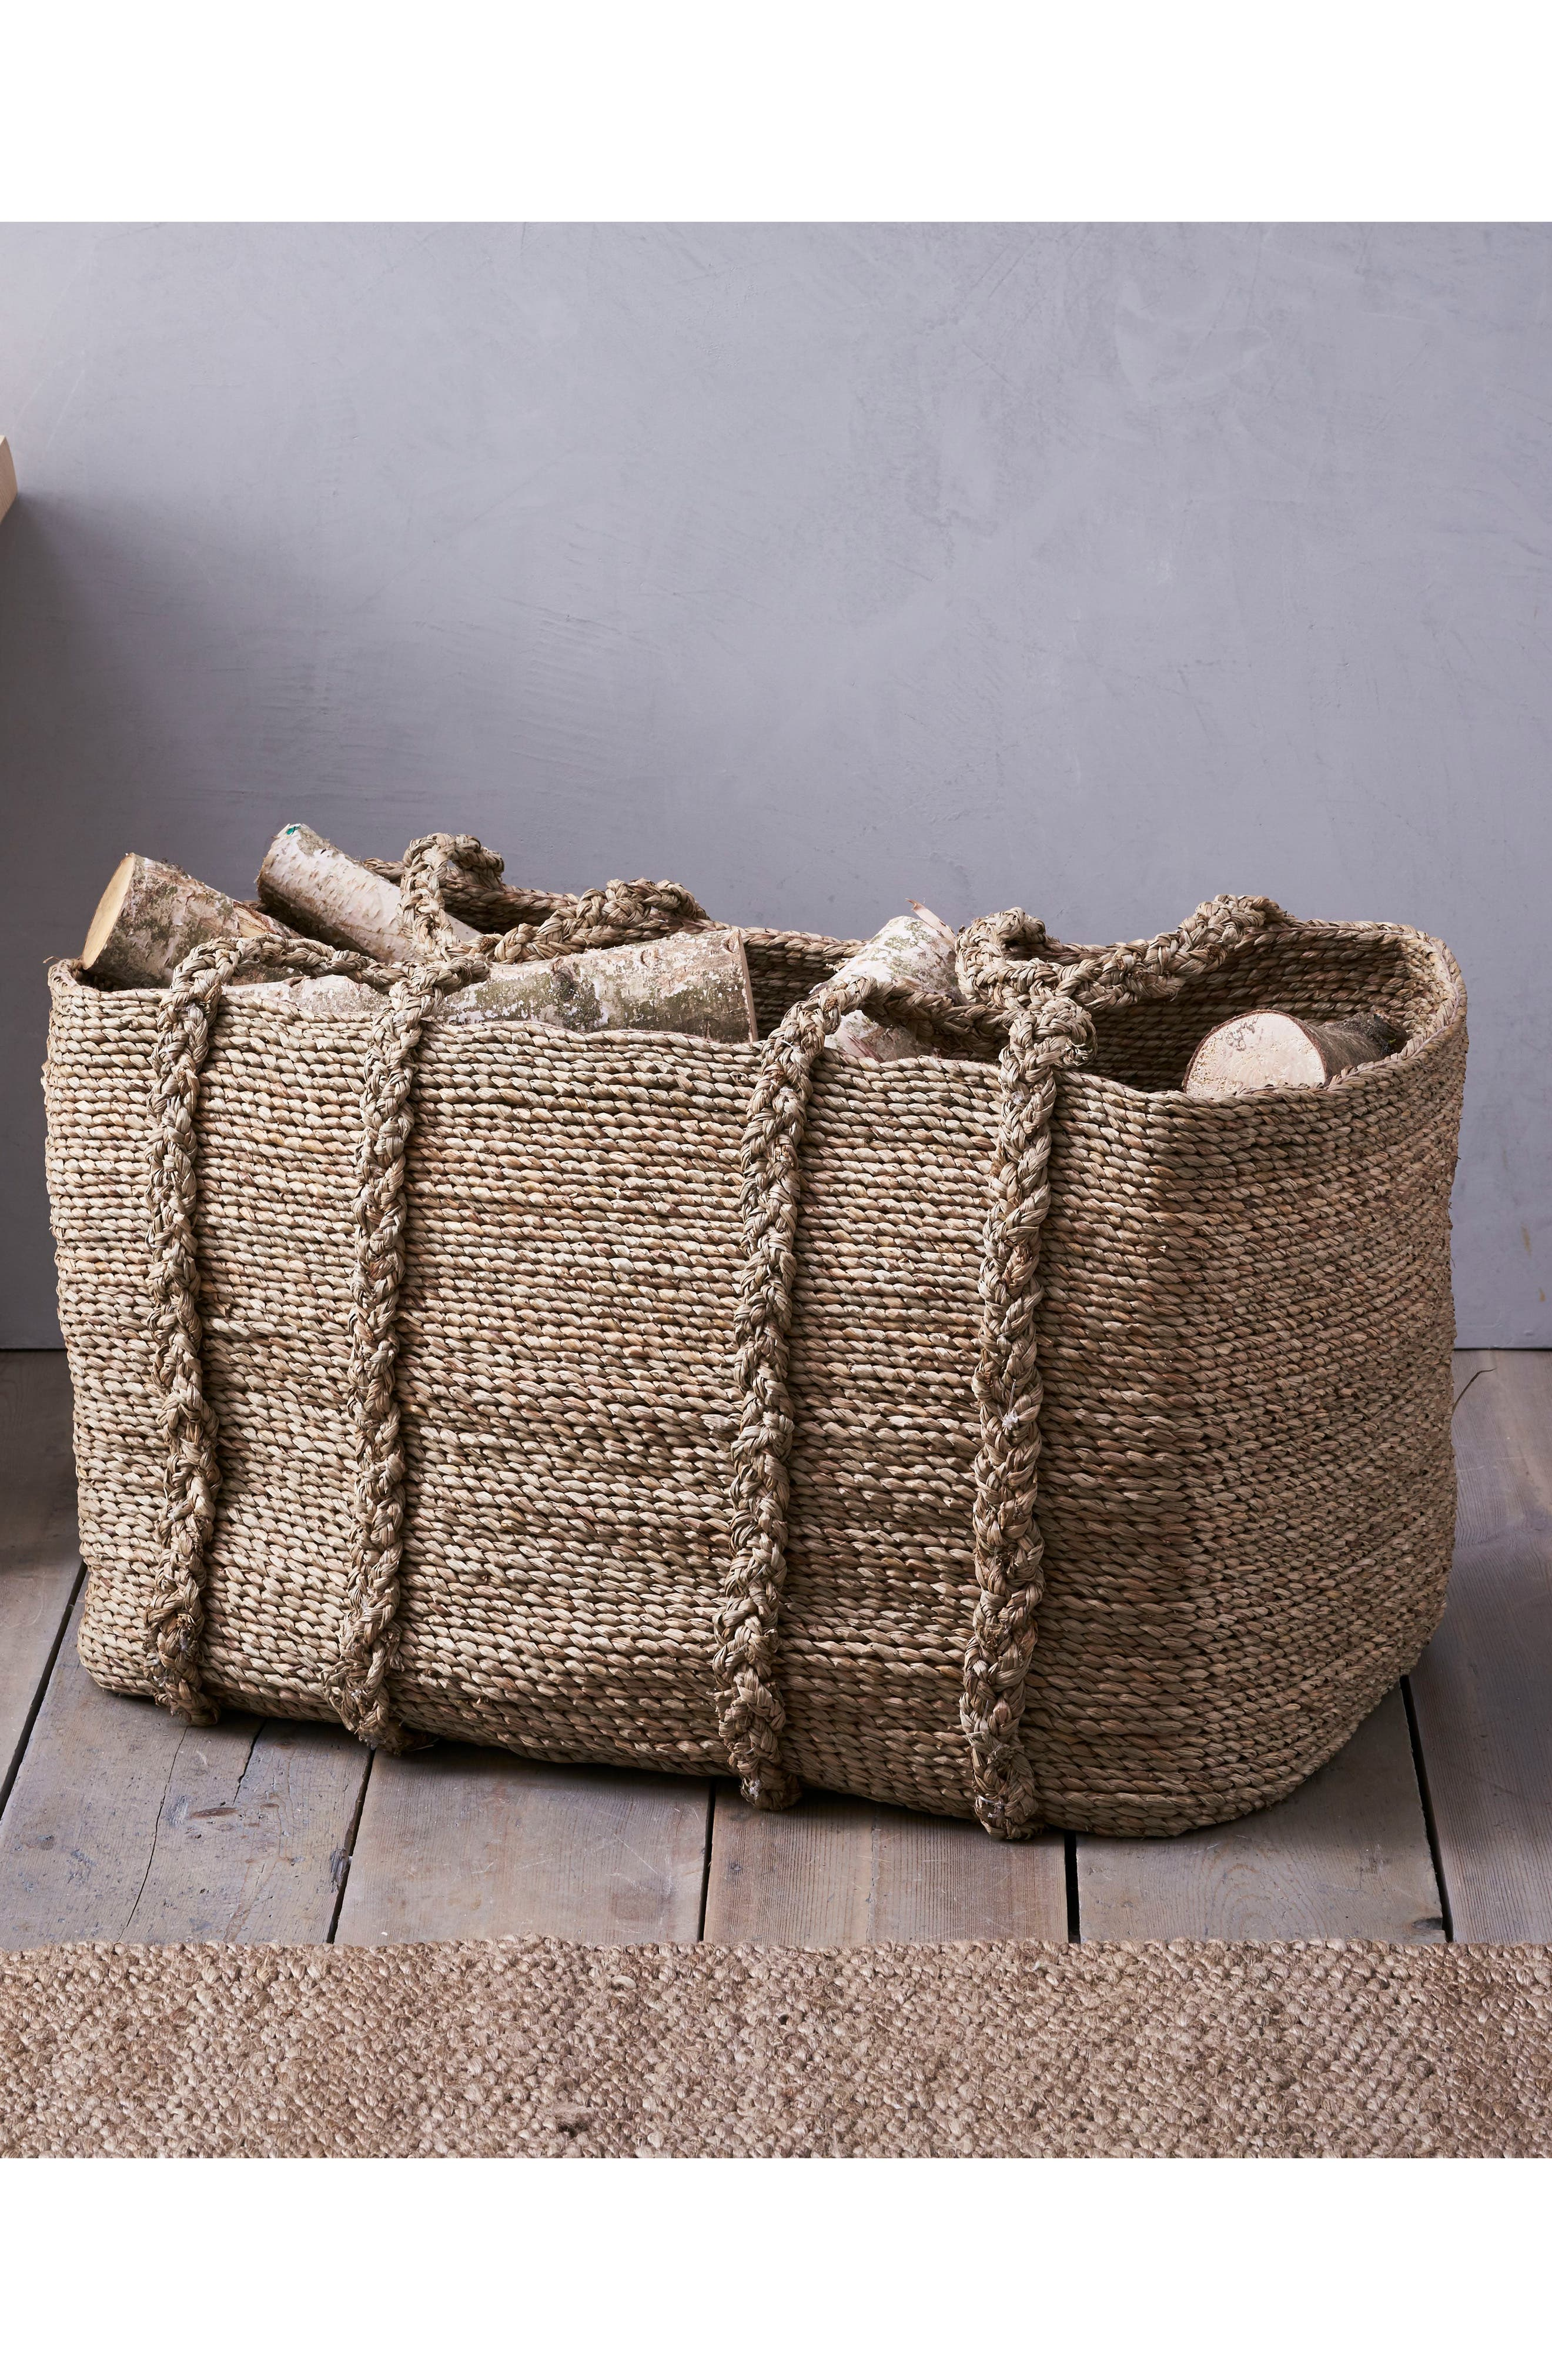 THE WHITE COMPANY Large Woven Storage Basket, Main, color, NATURAL